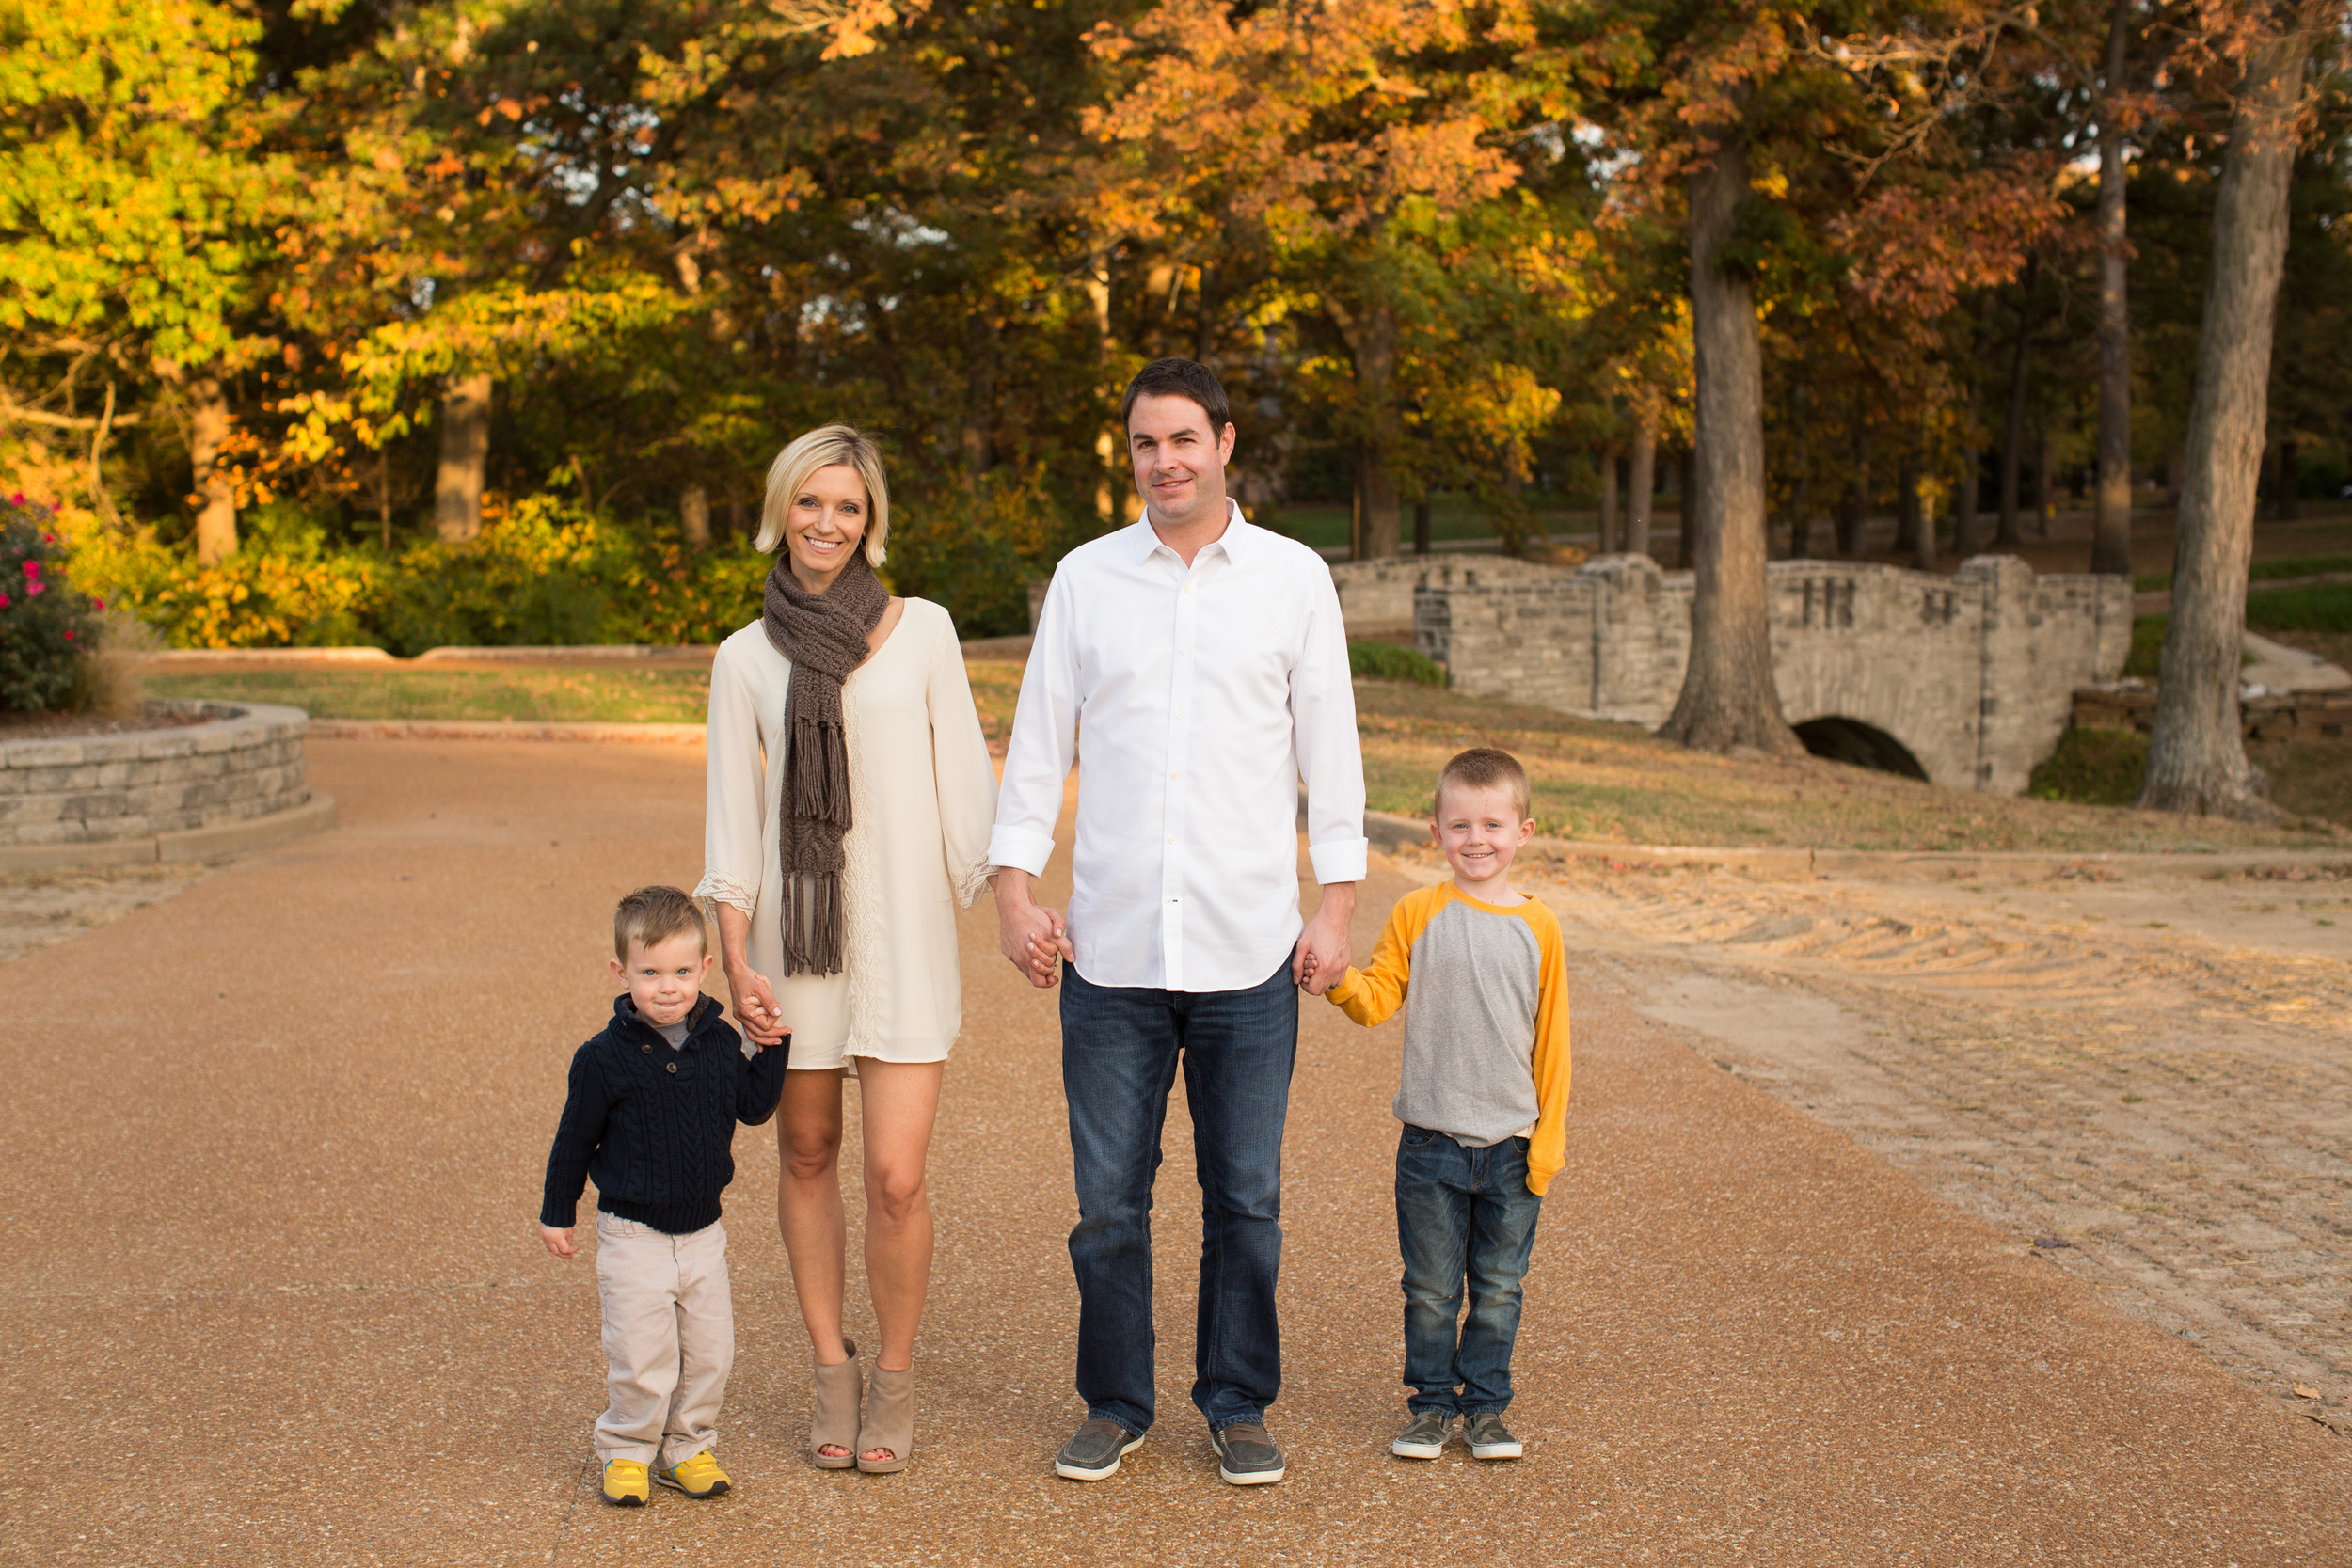 St-Louis-Family-Photographer_Ashley-Becker_0031.jpg